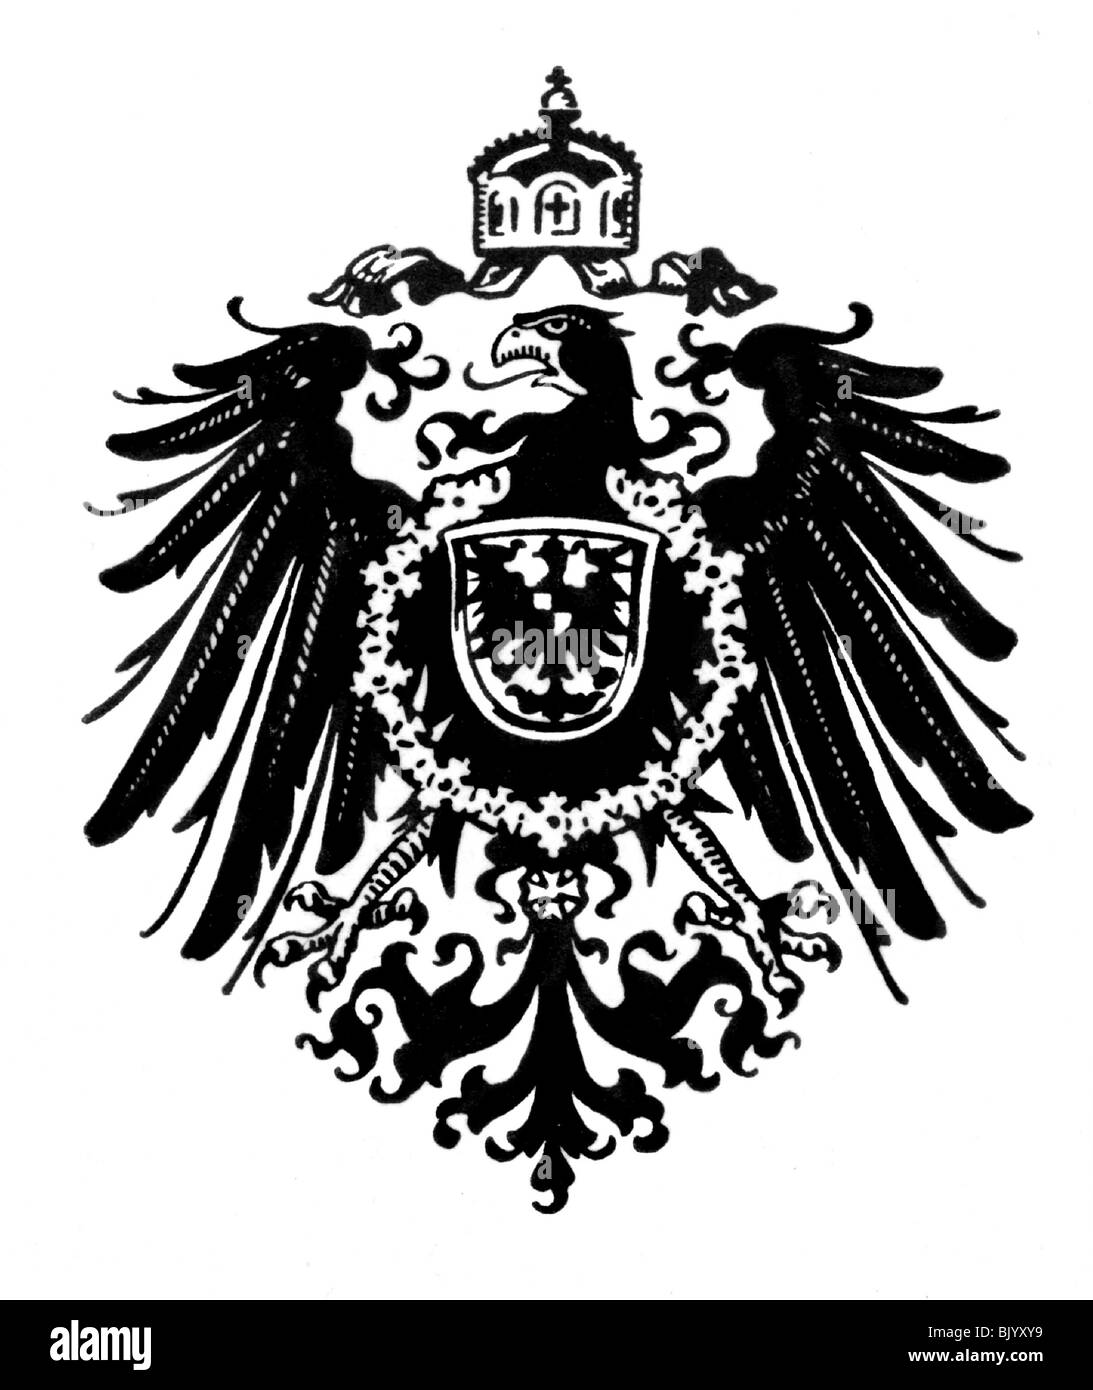 German Empire Symbol